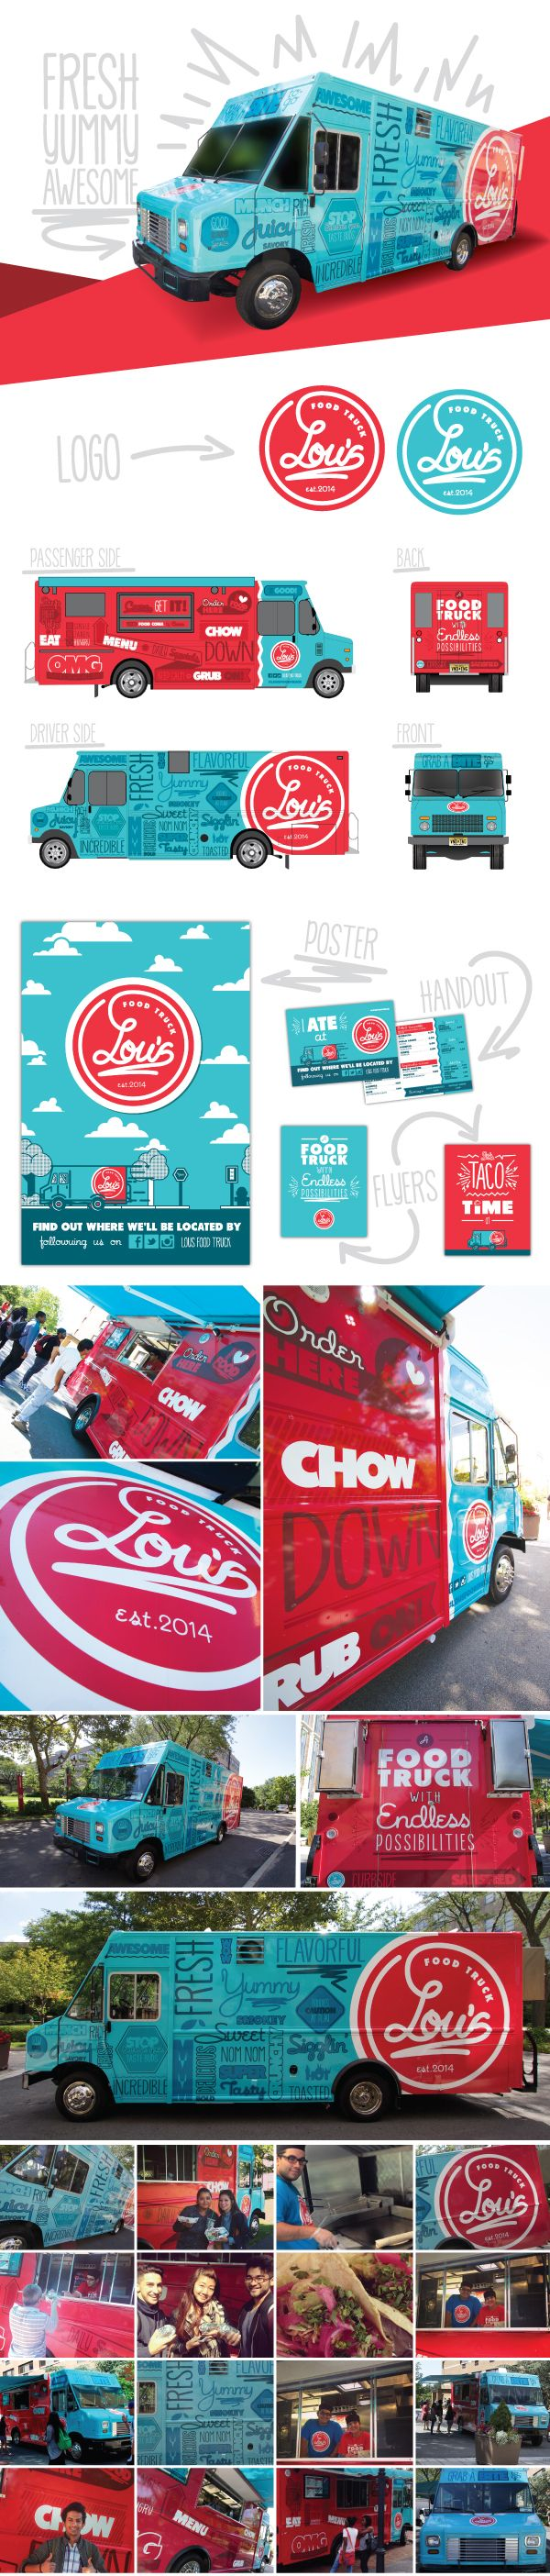 The rocket pizza food truck grits grids - Food Rings Ideas Inspirations 2017 Discover Lou S Food Truck On Behance Great Use Of Colors And I Love It How This Is Such A Fun Truck